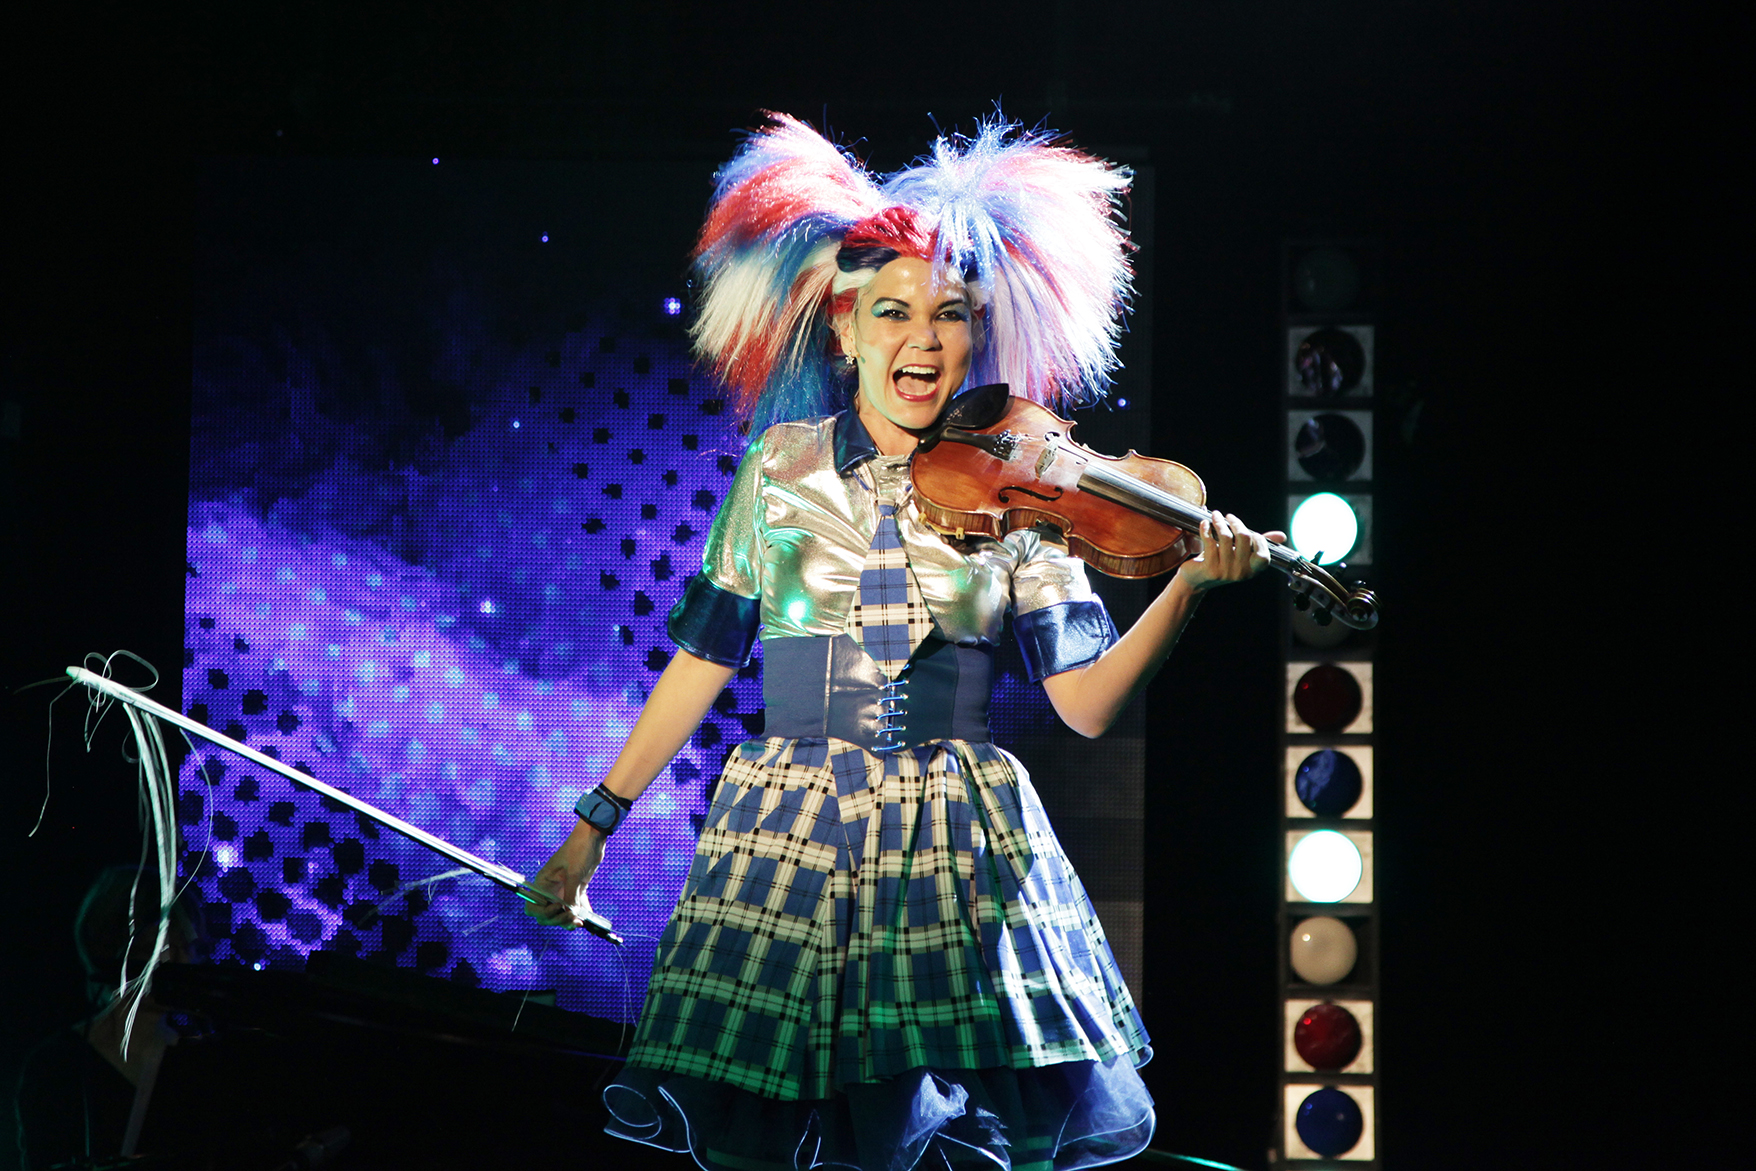 performer playing the violin in a bright wig